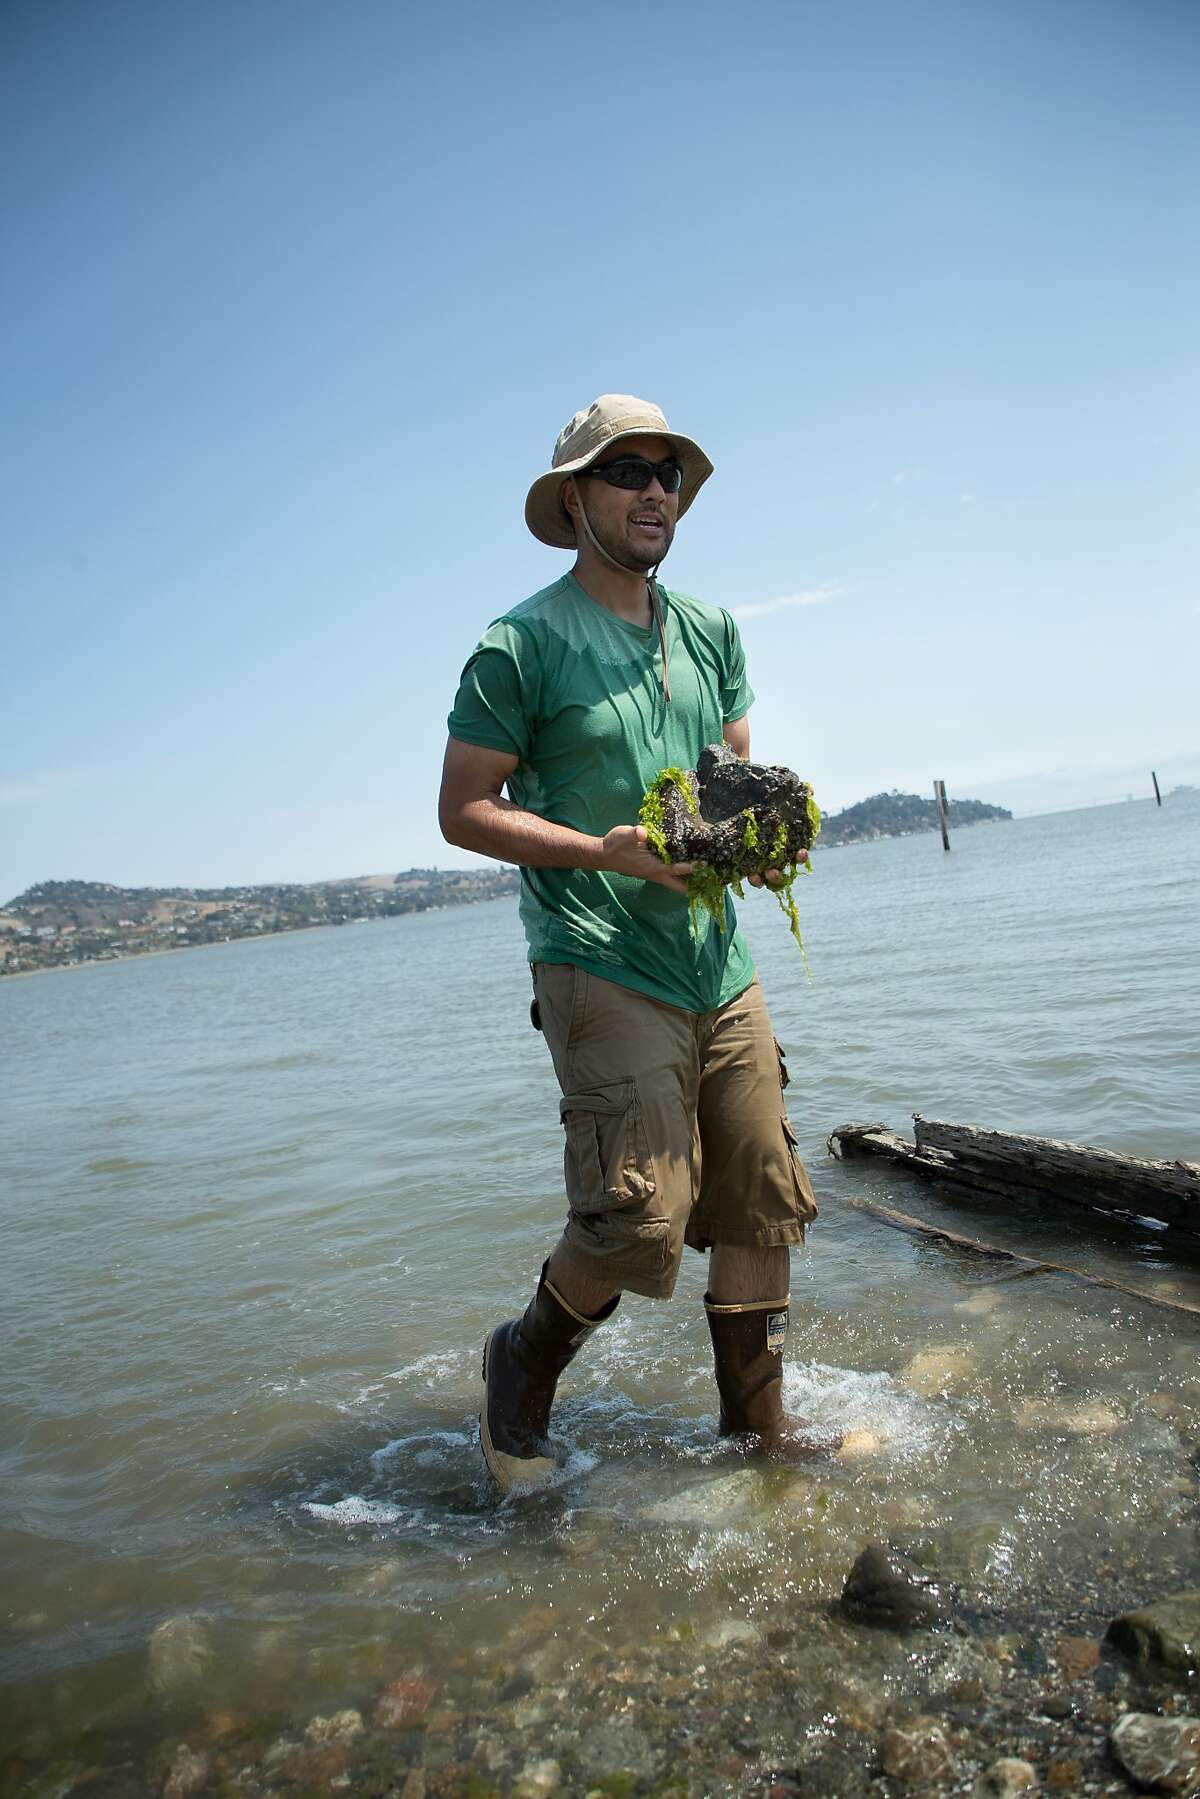 Brian Cheng, Assistant Professor at the University of Massachusetts Amherst, finds a rock with predatory Atlantic oyster drills off Aramburu Island, Tuesday, Aug. 14, 2018, in Tiburon, CA.